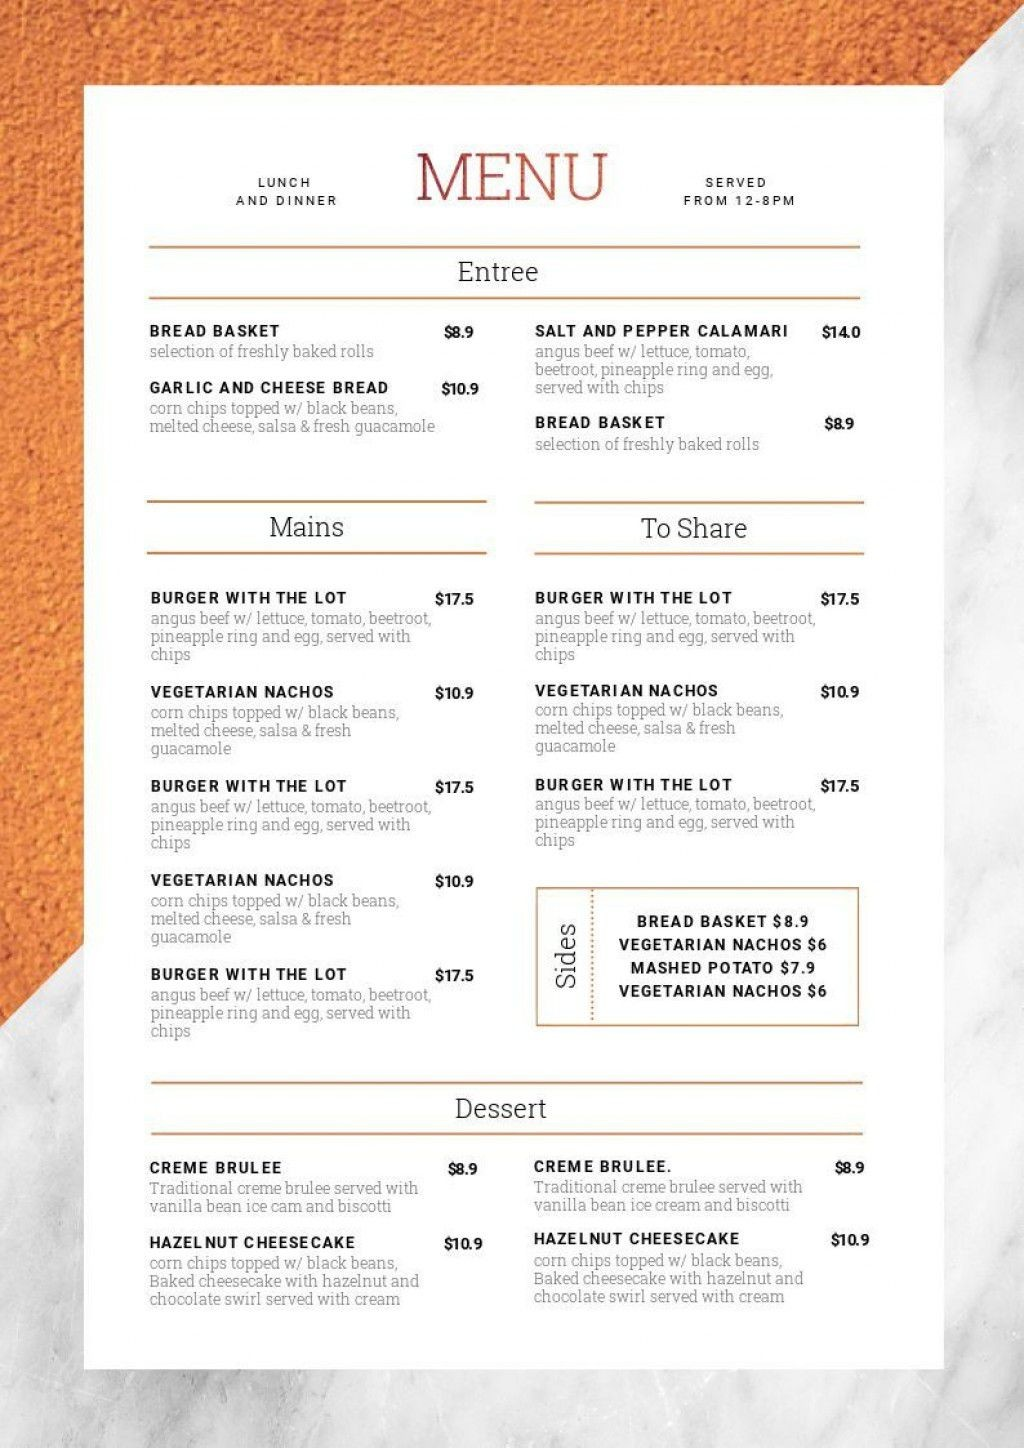 006 Awesome Menu Card Template Free Download Example  Indian Restaurant Design CafeLarge